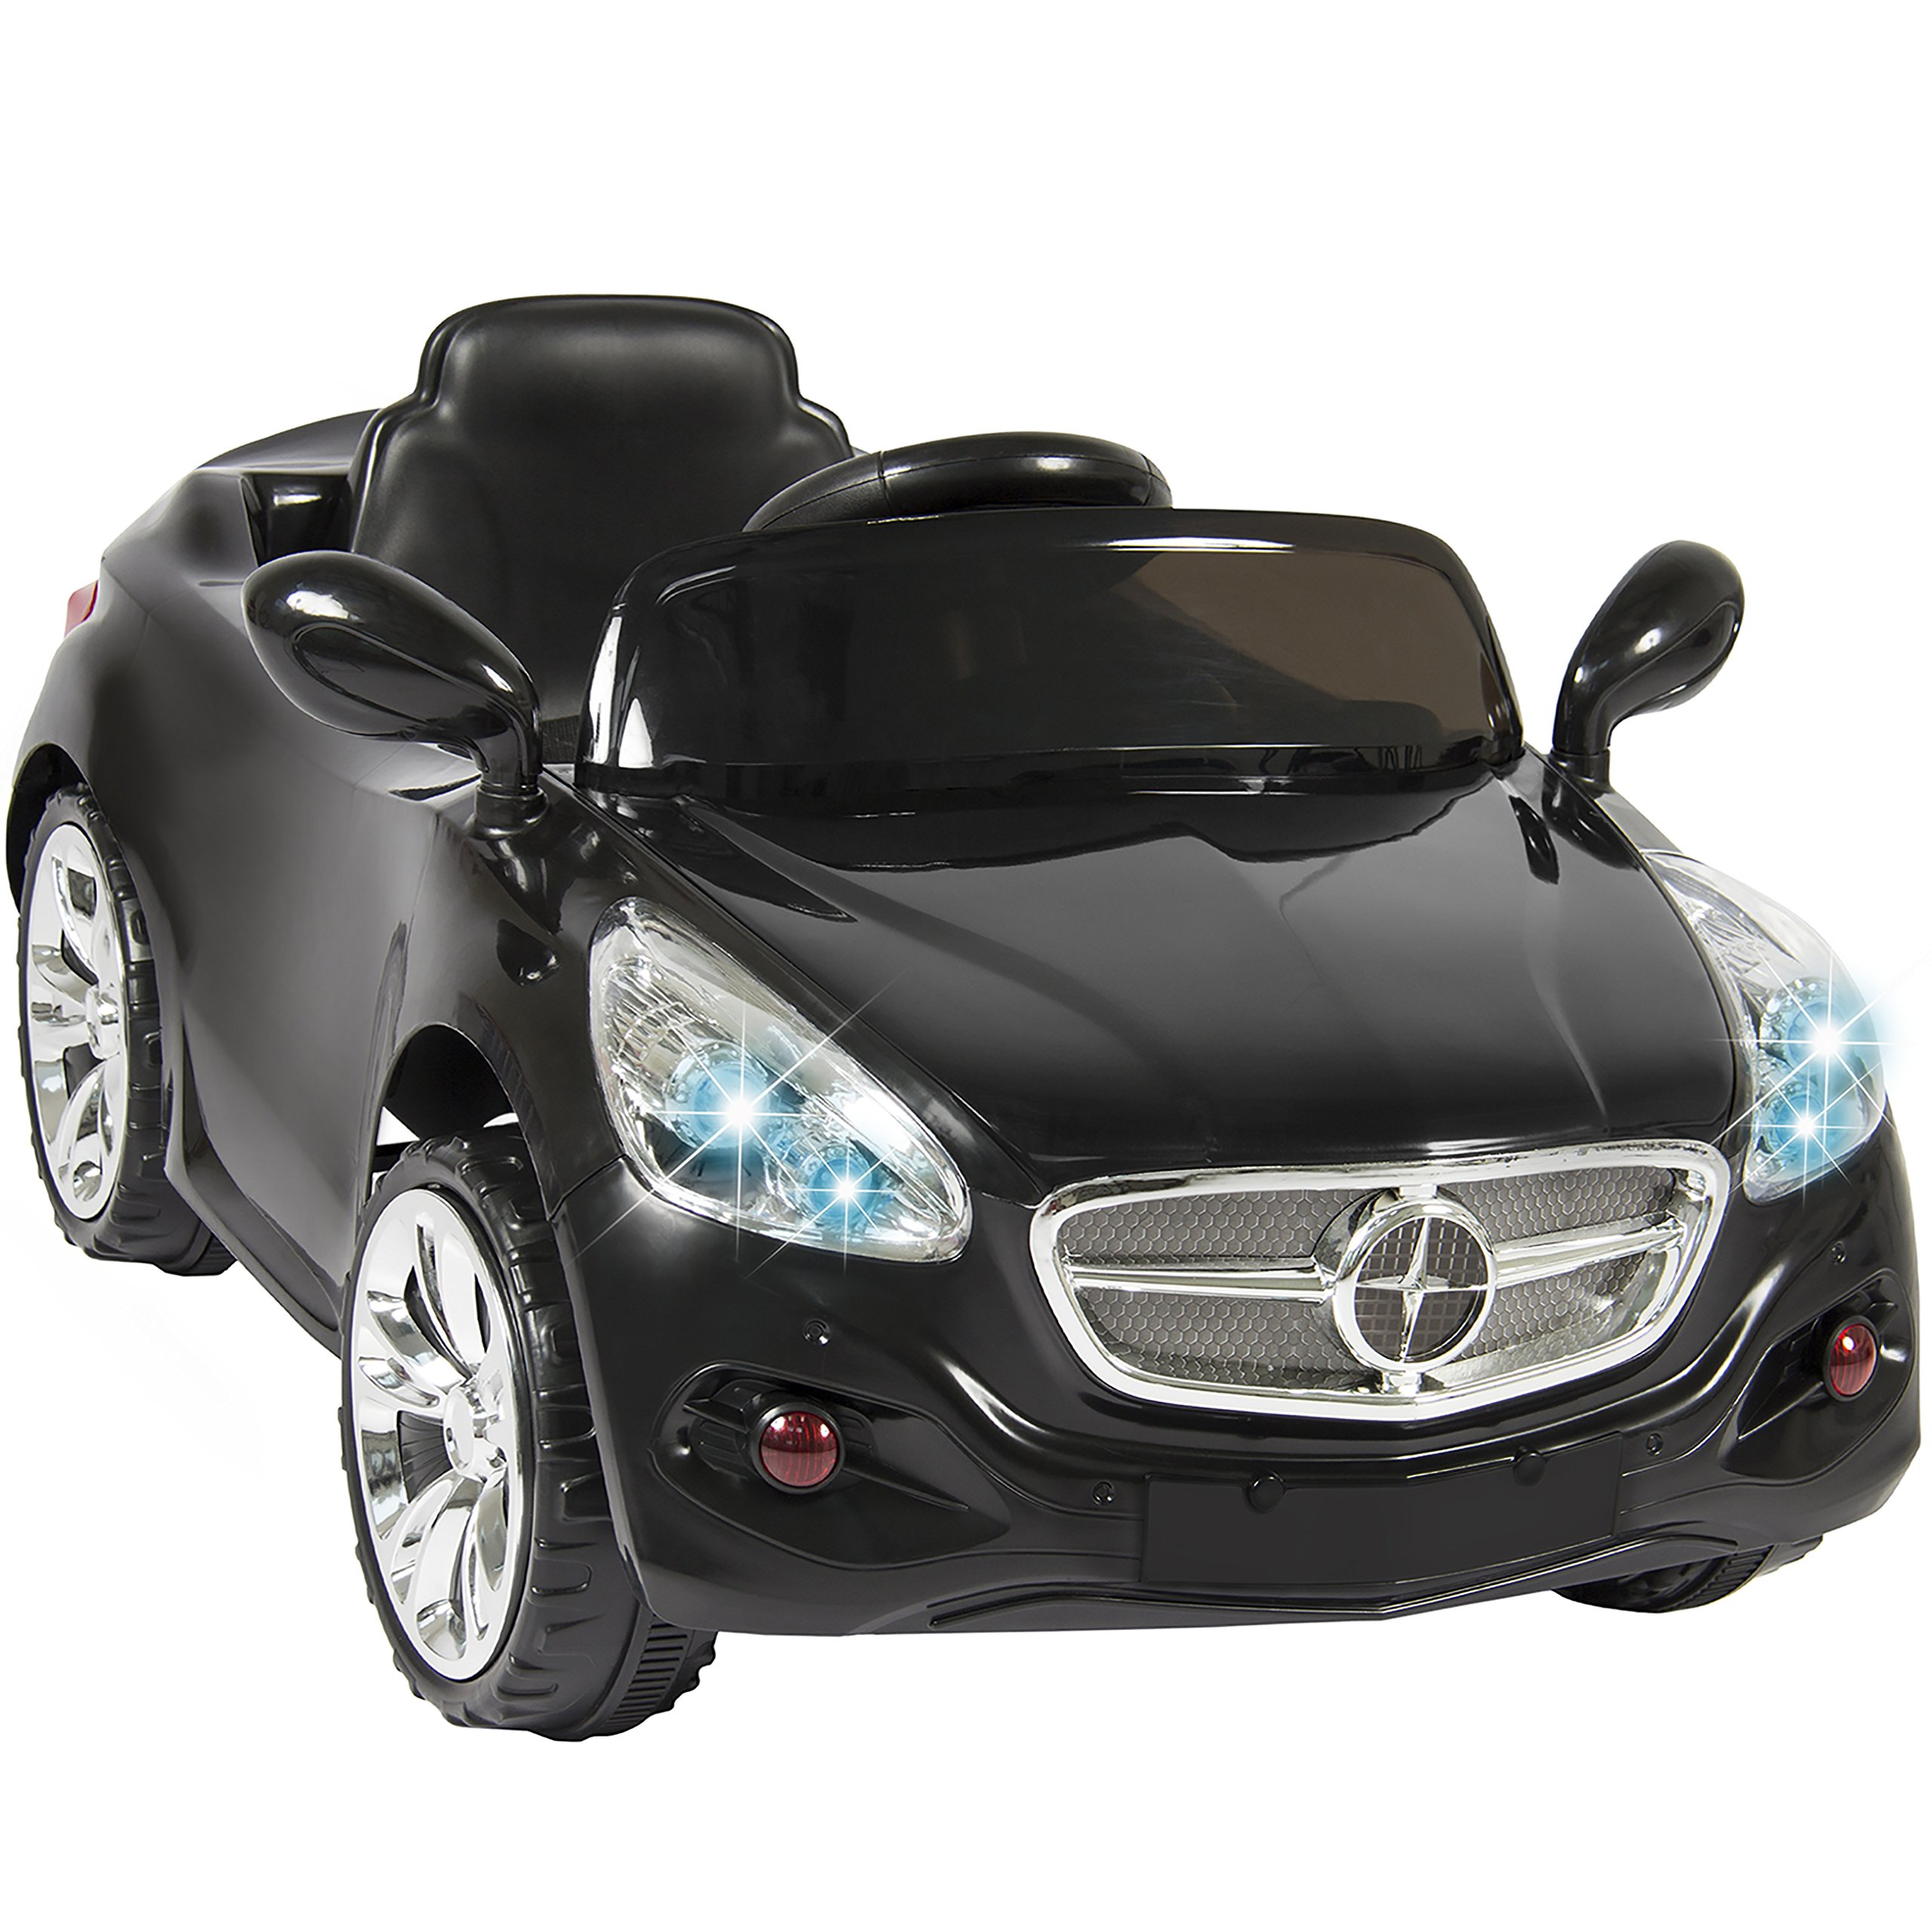 Best Choice Products Kids 12V Electric Power Ride On Car with Radio & MP3, Black by Best Choice Products